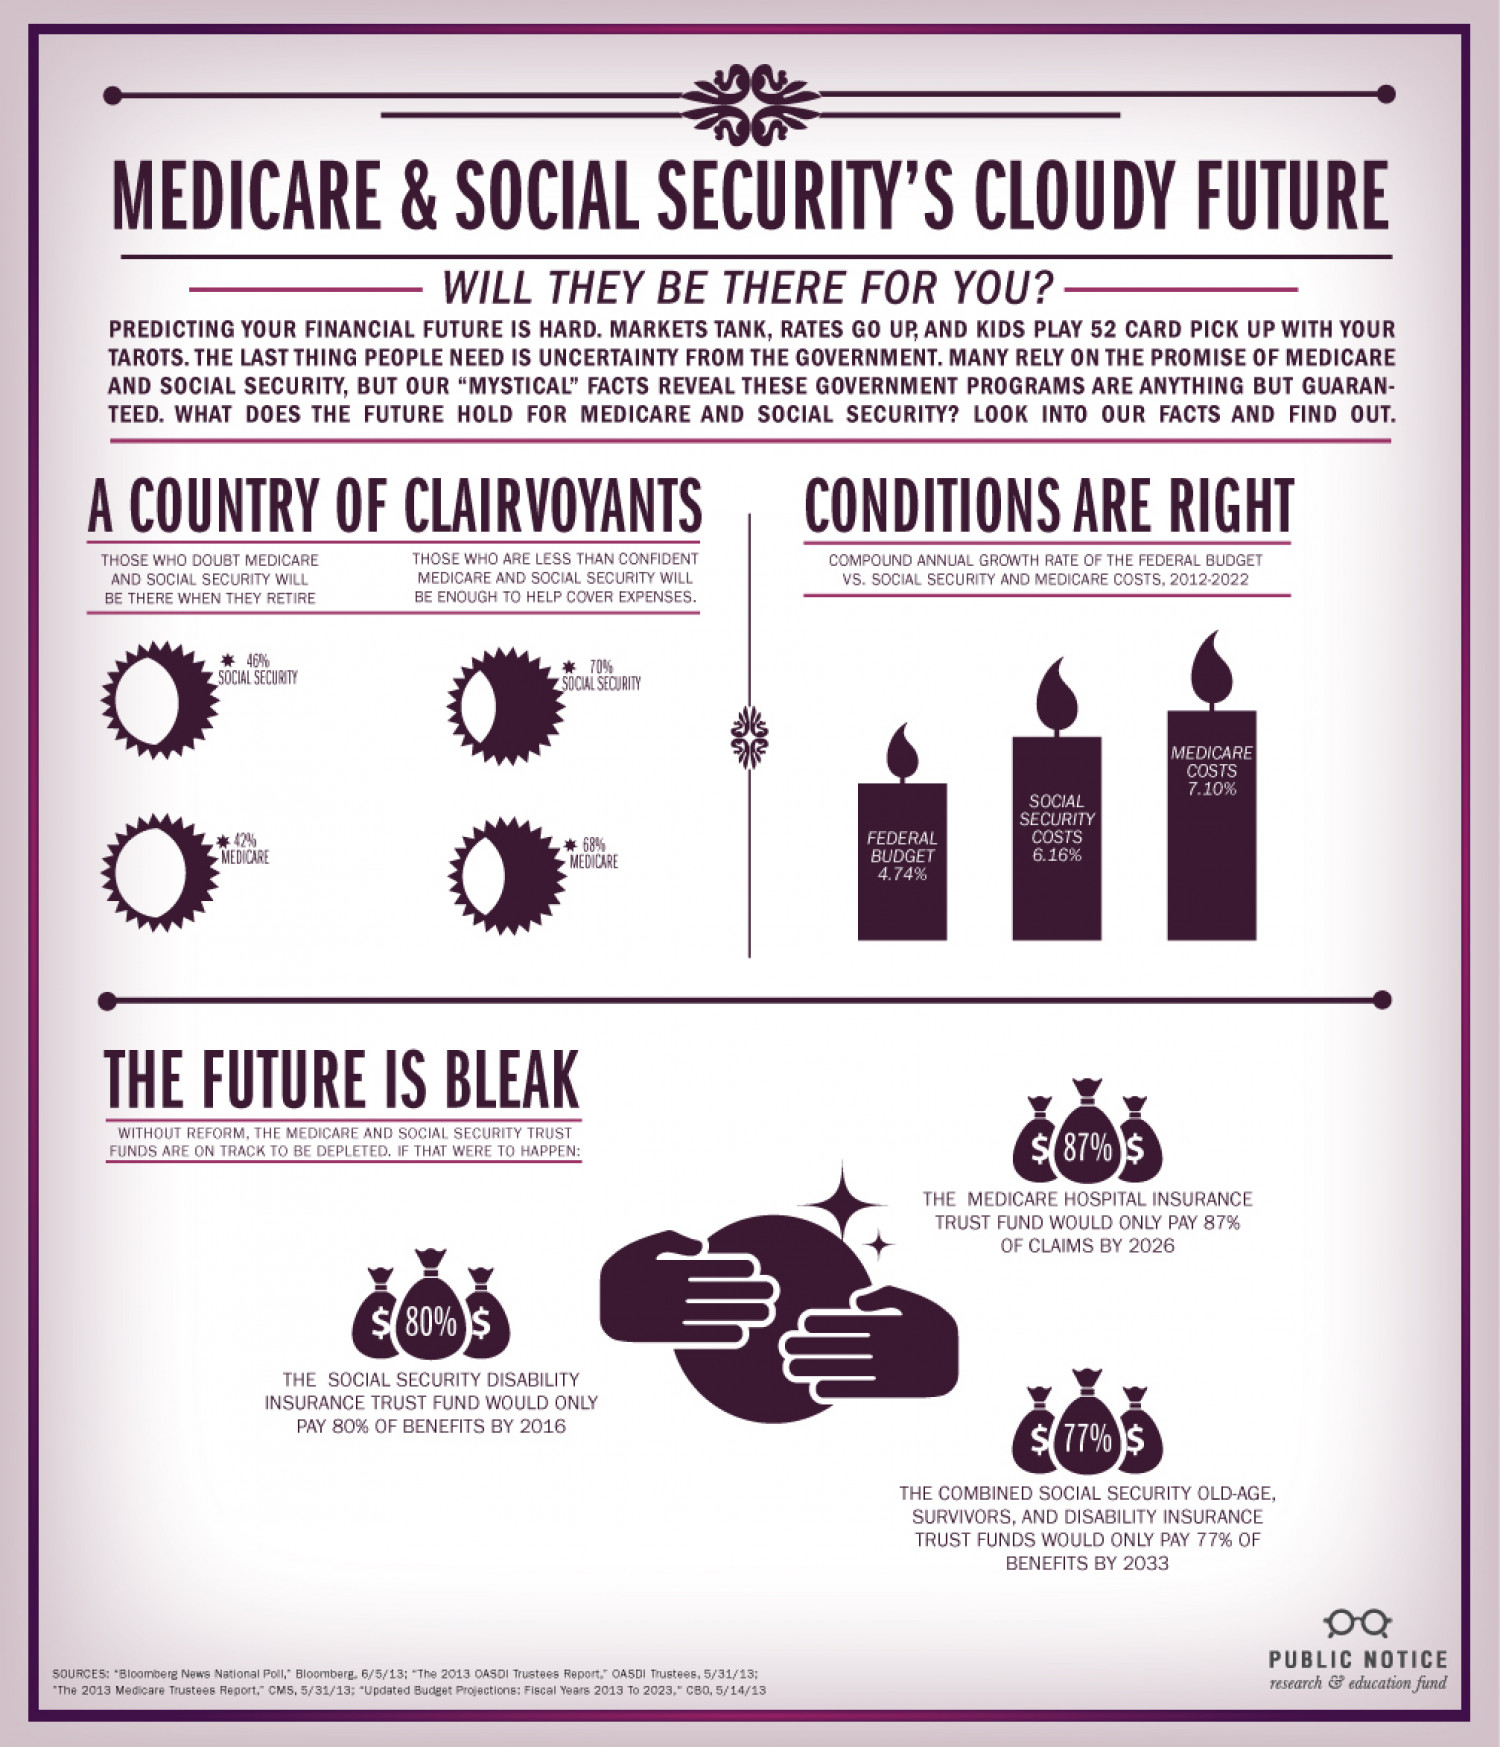 Medicare and Social Security's Cloudy Future Infographic